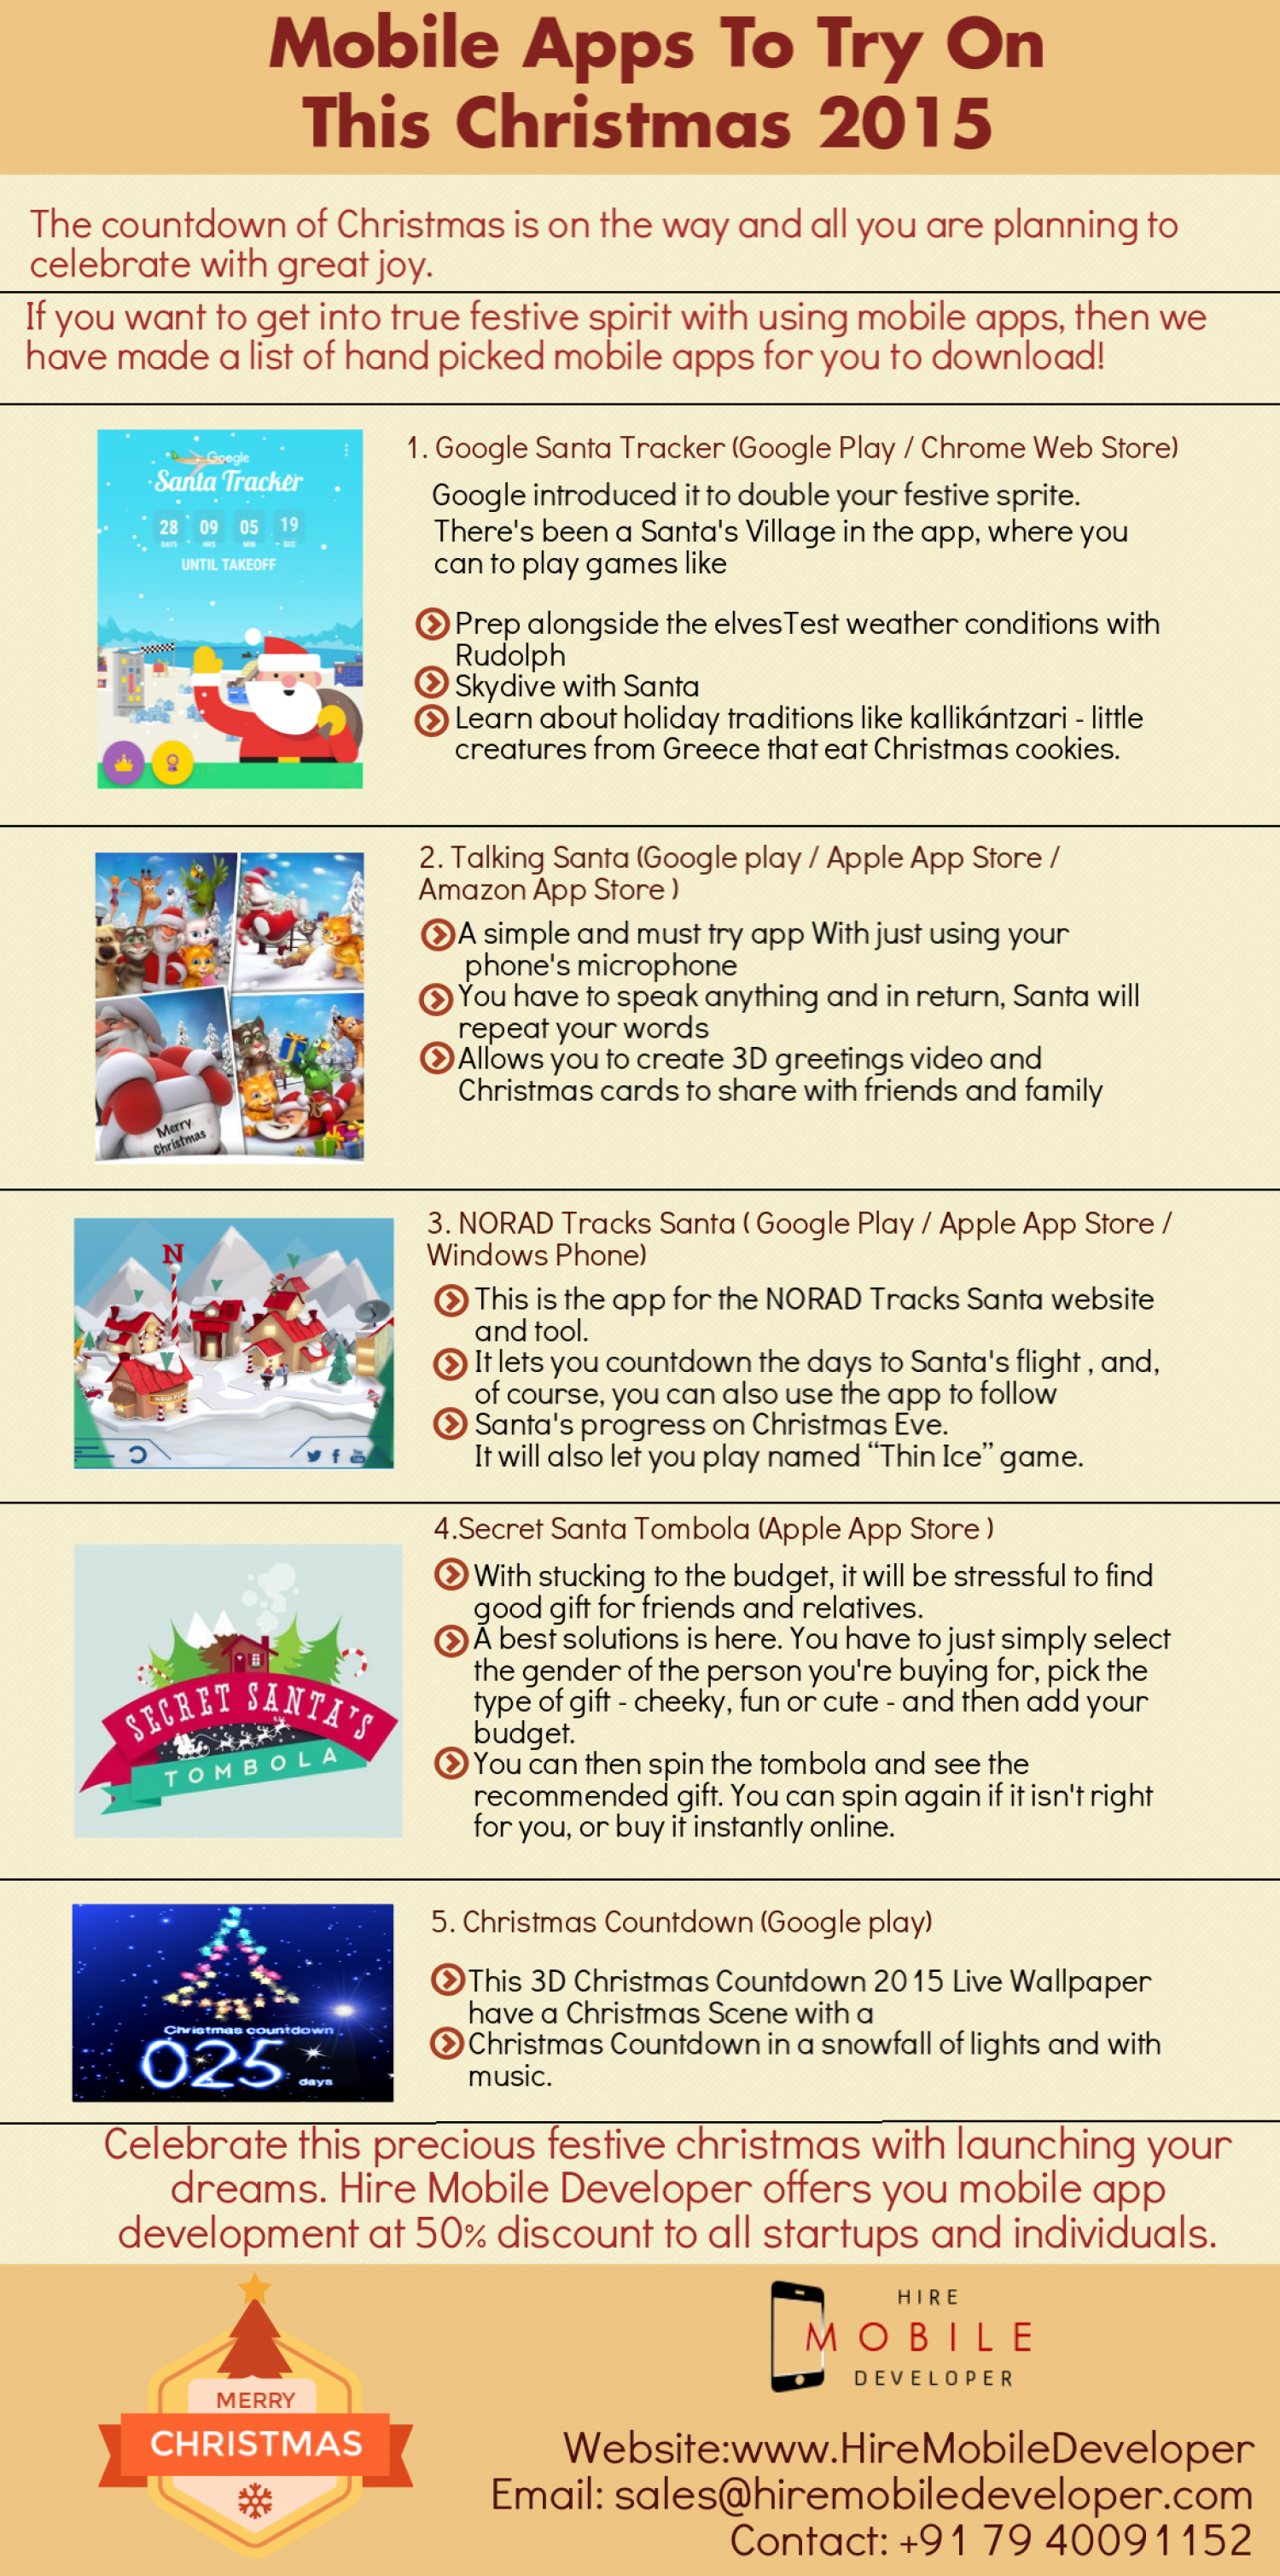 Mobile Apps to try on this Christmas Infographic